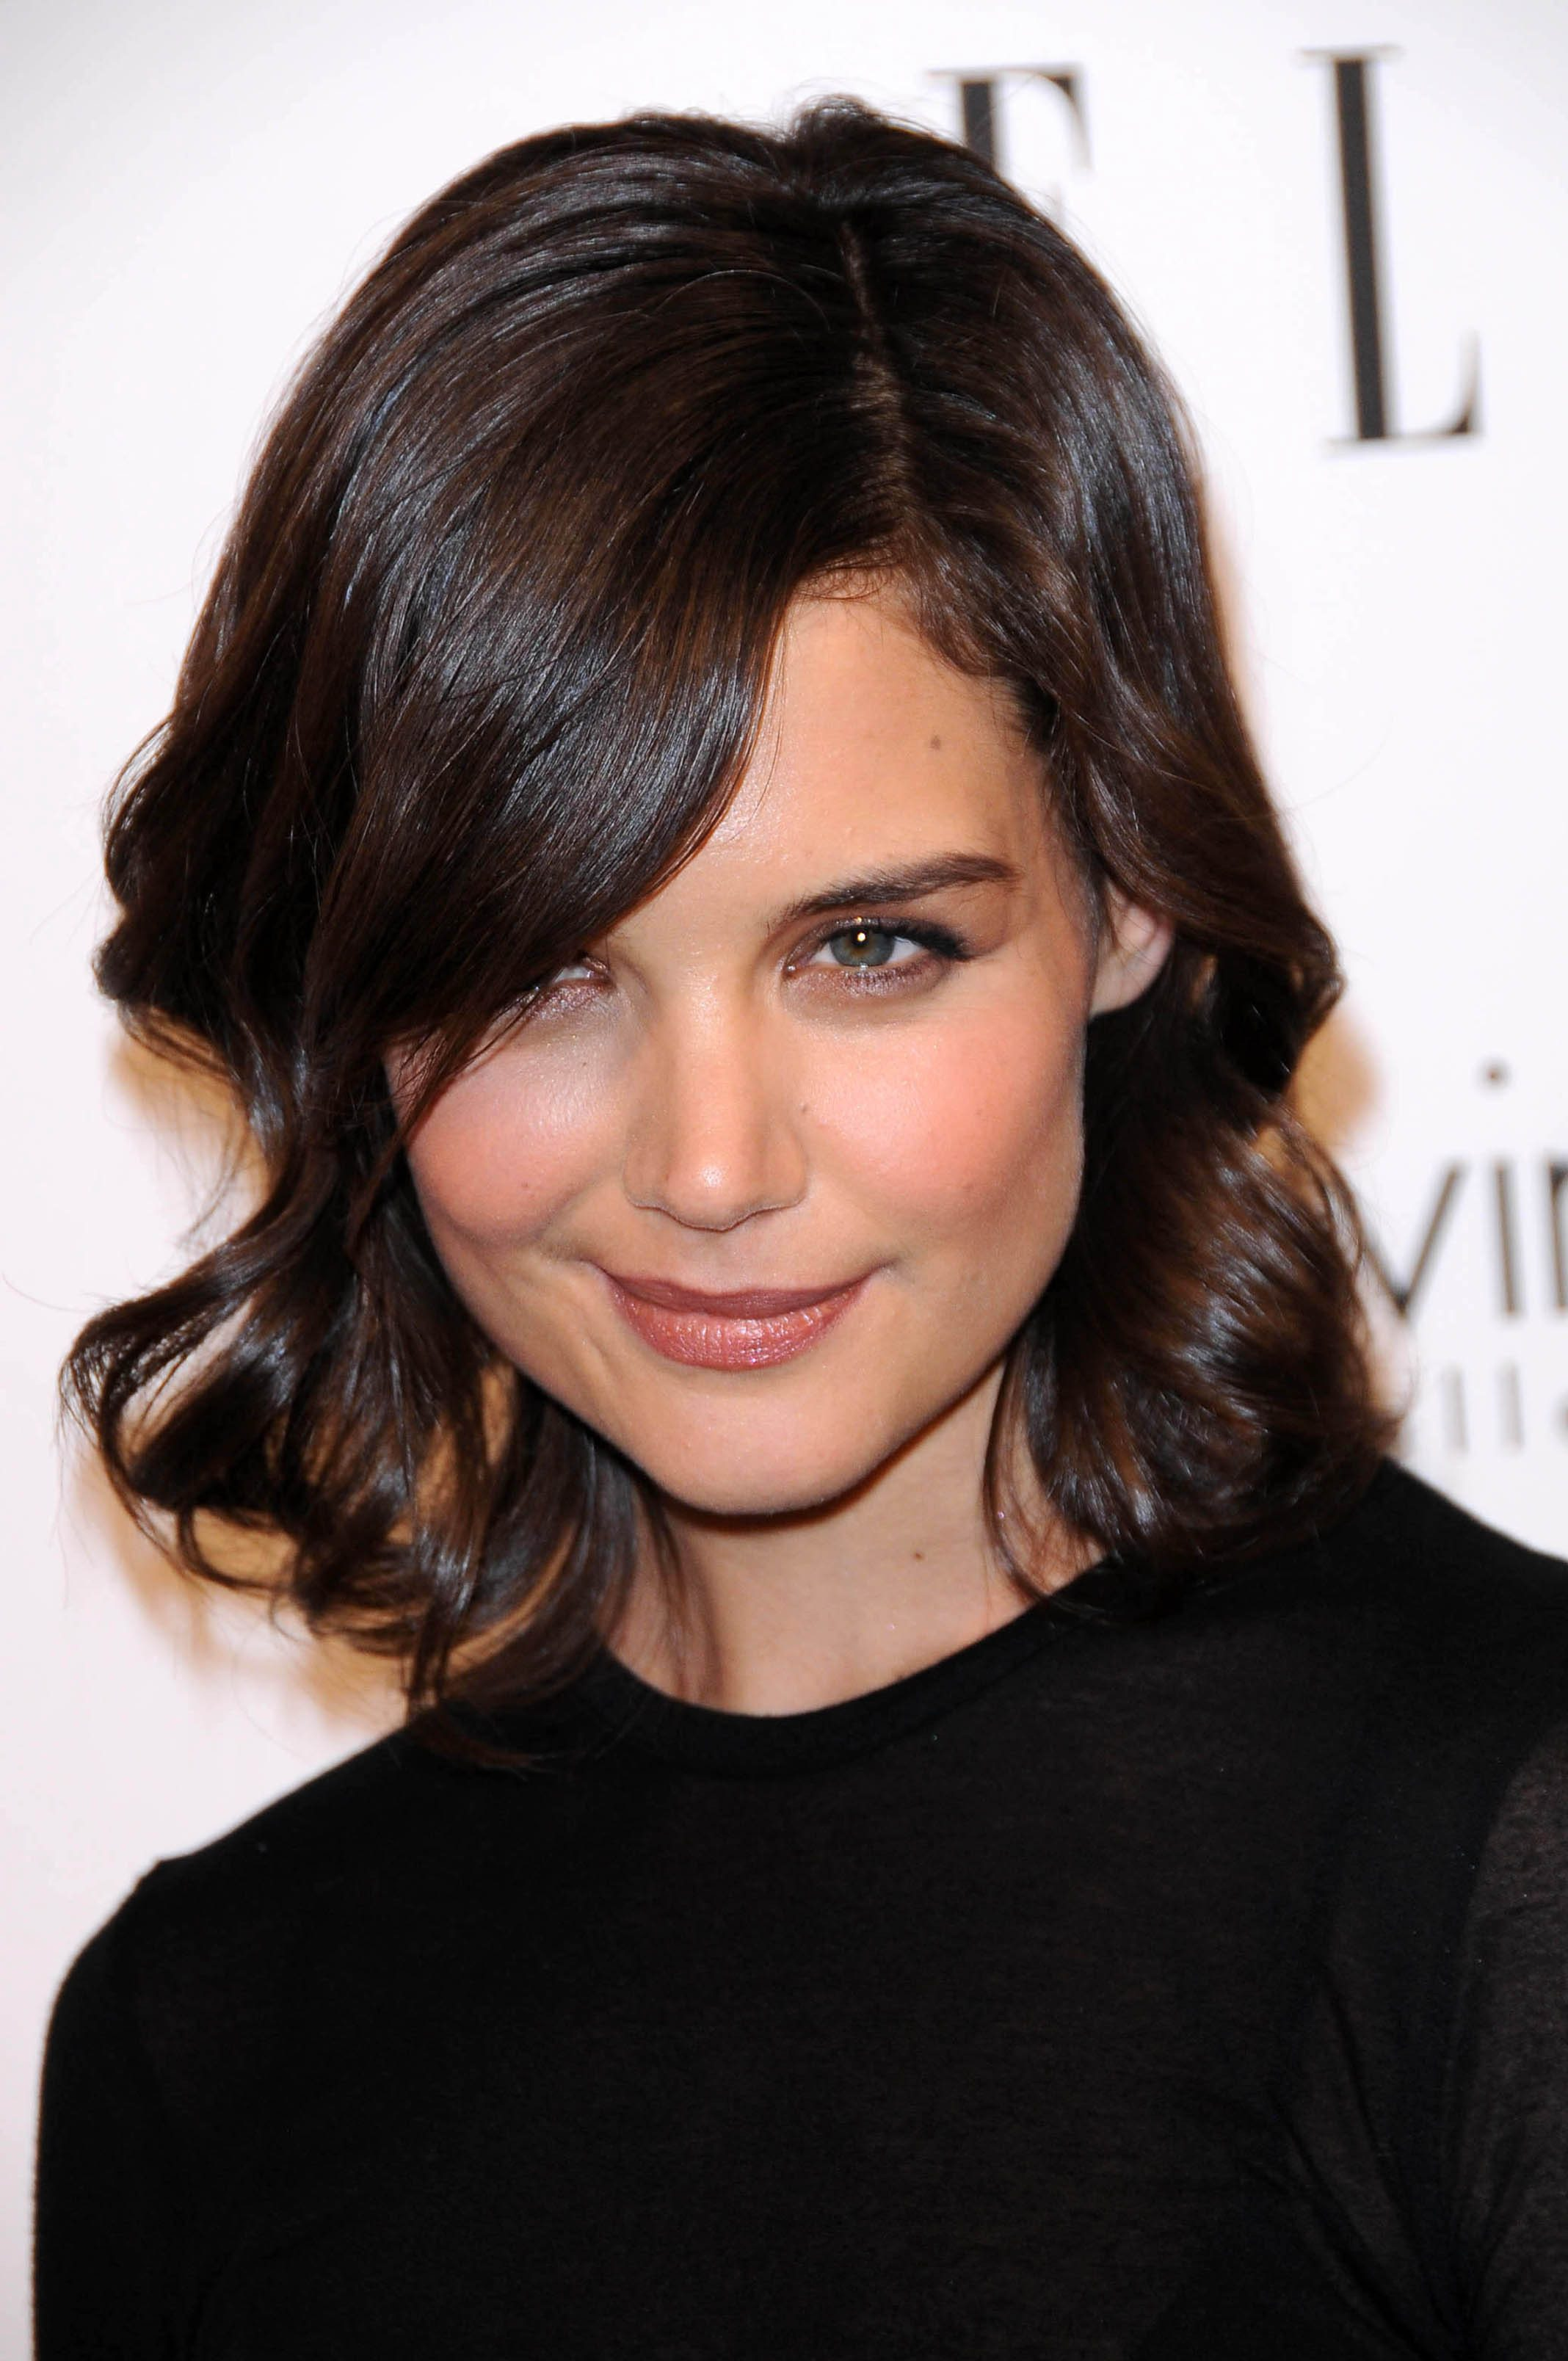 Katie Holmes' Mid-Length Curls With Side Bangs